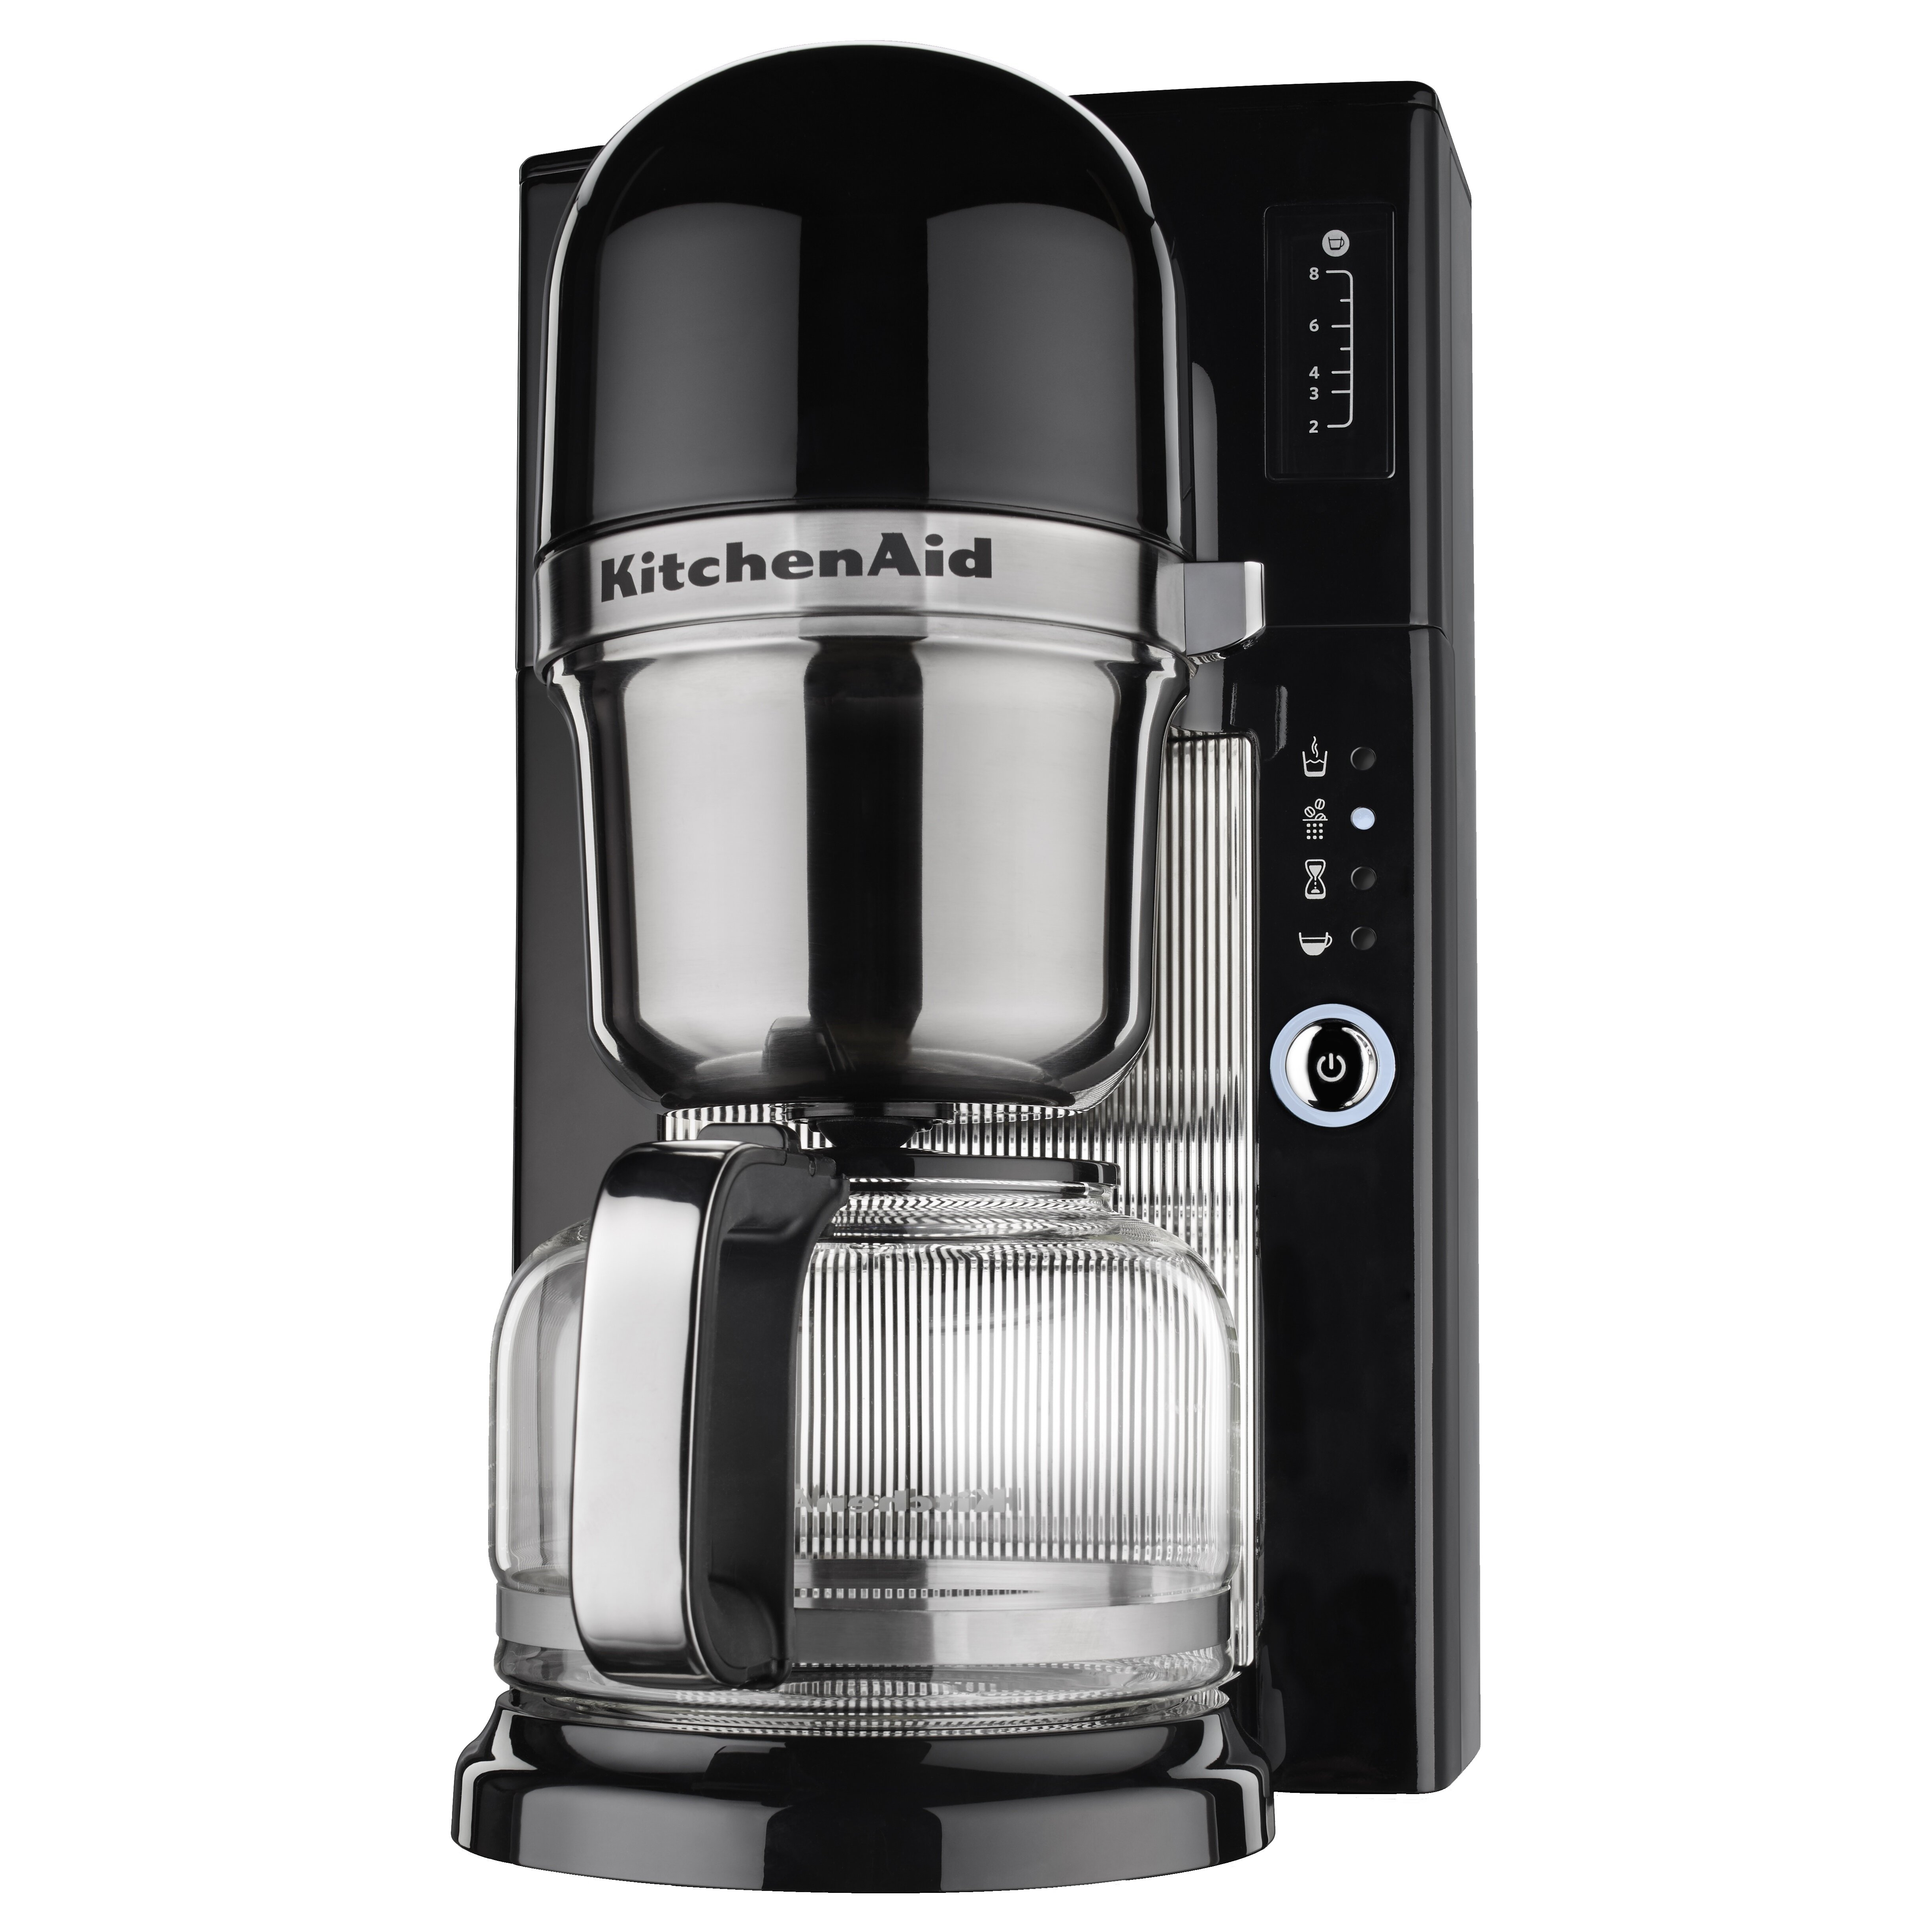 Kitchenaid Coffee Maker Pour Over : KitchenAid 8 Cup Pour Over Coffee Maker & Reviews Wayfair